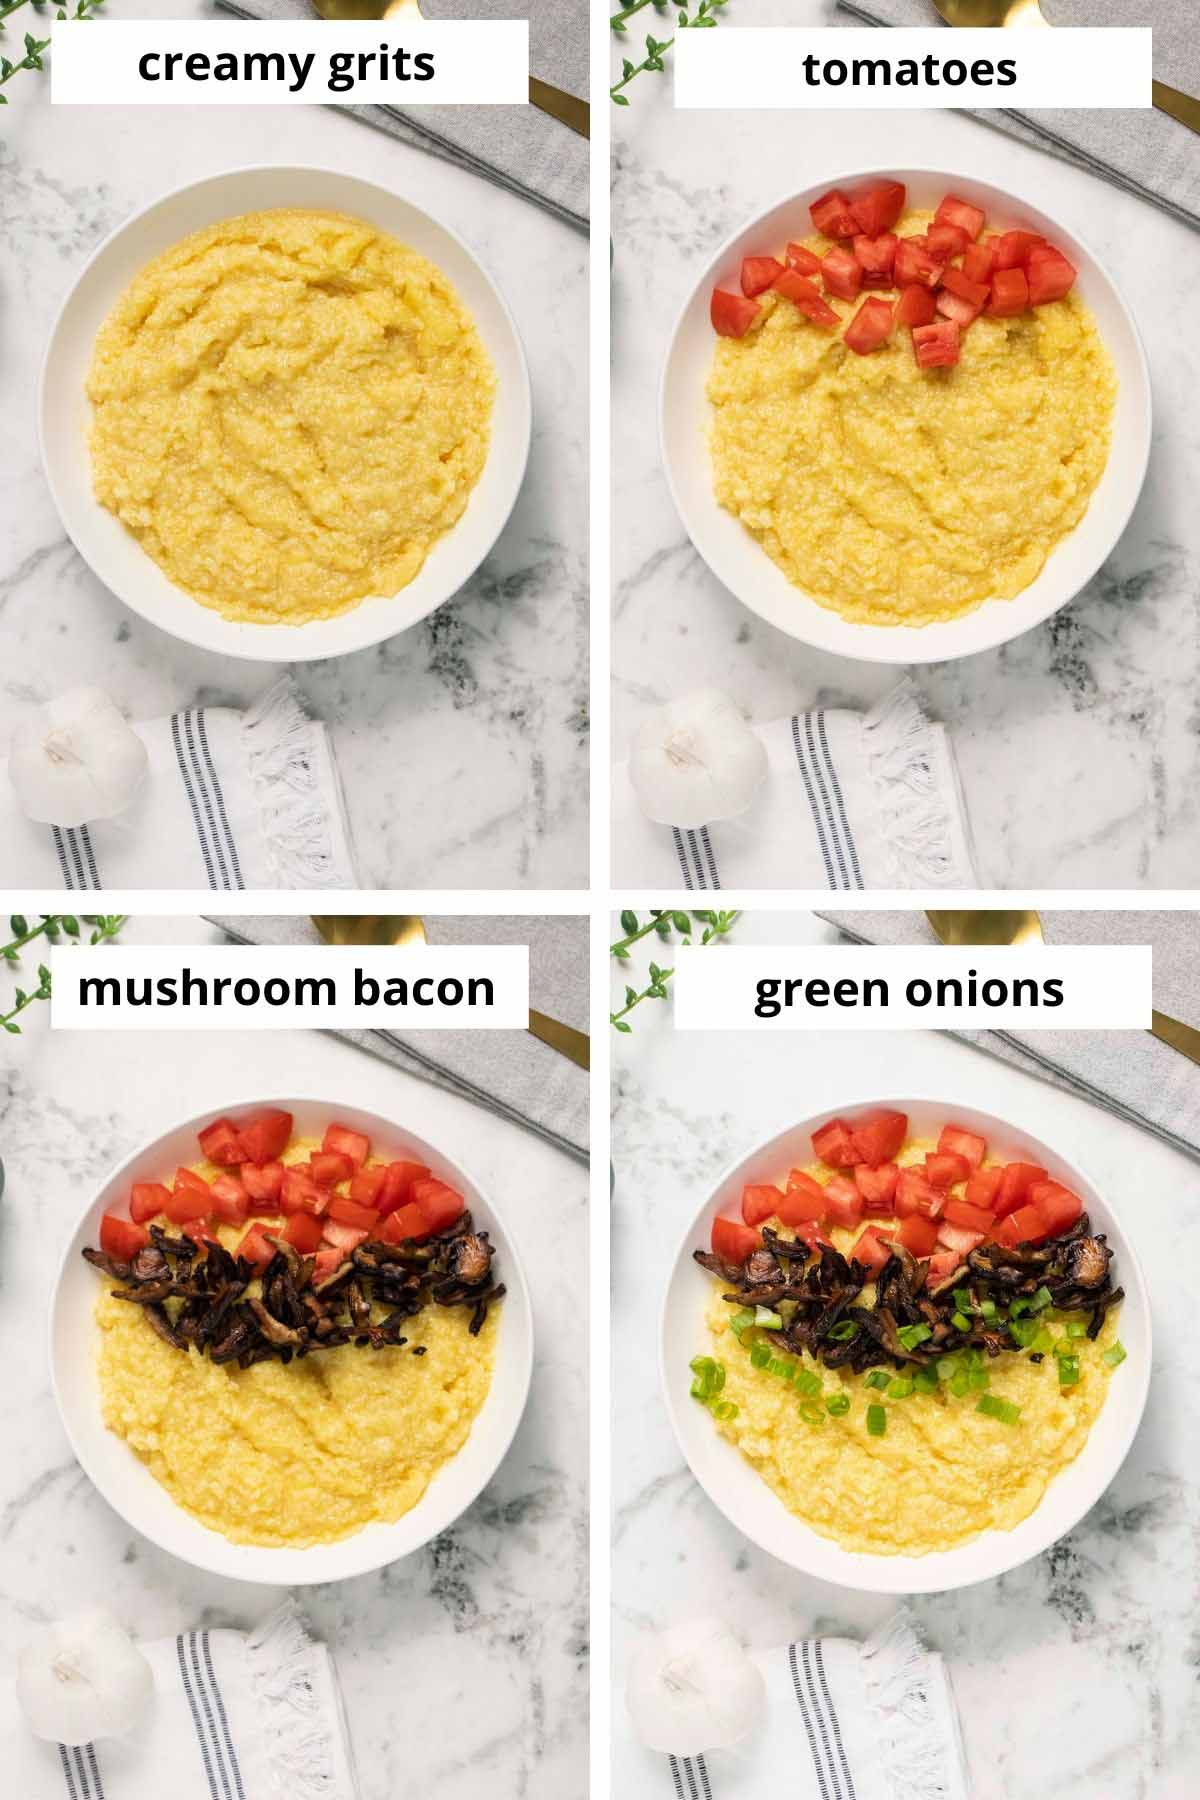 image collage showing vegan cheese grits and adding tomato, mushroom bacon, and green onion to the top